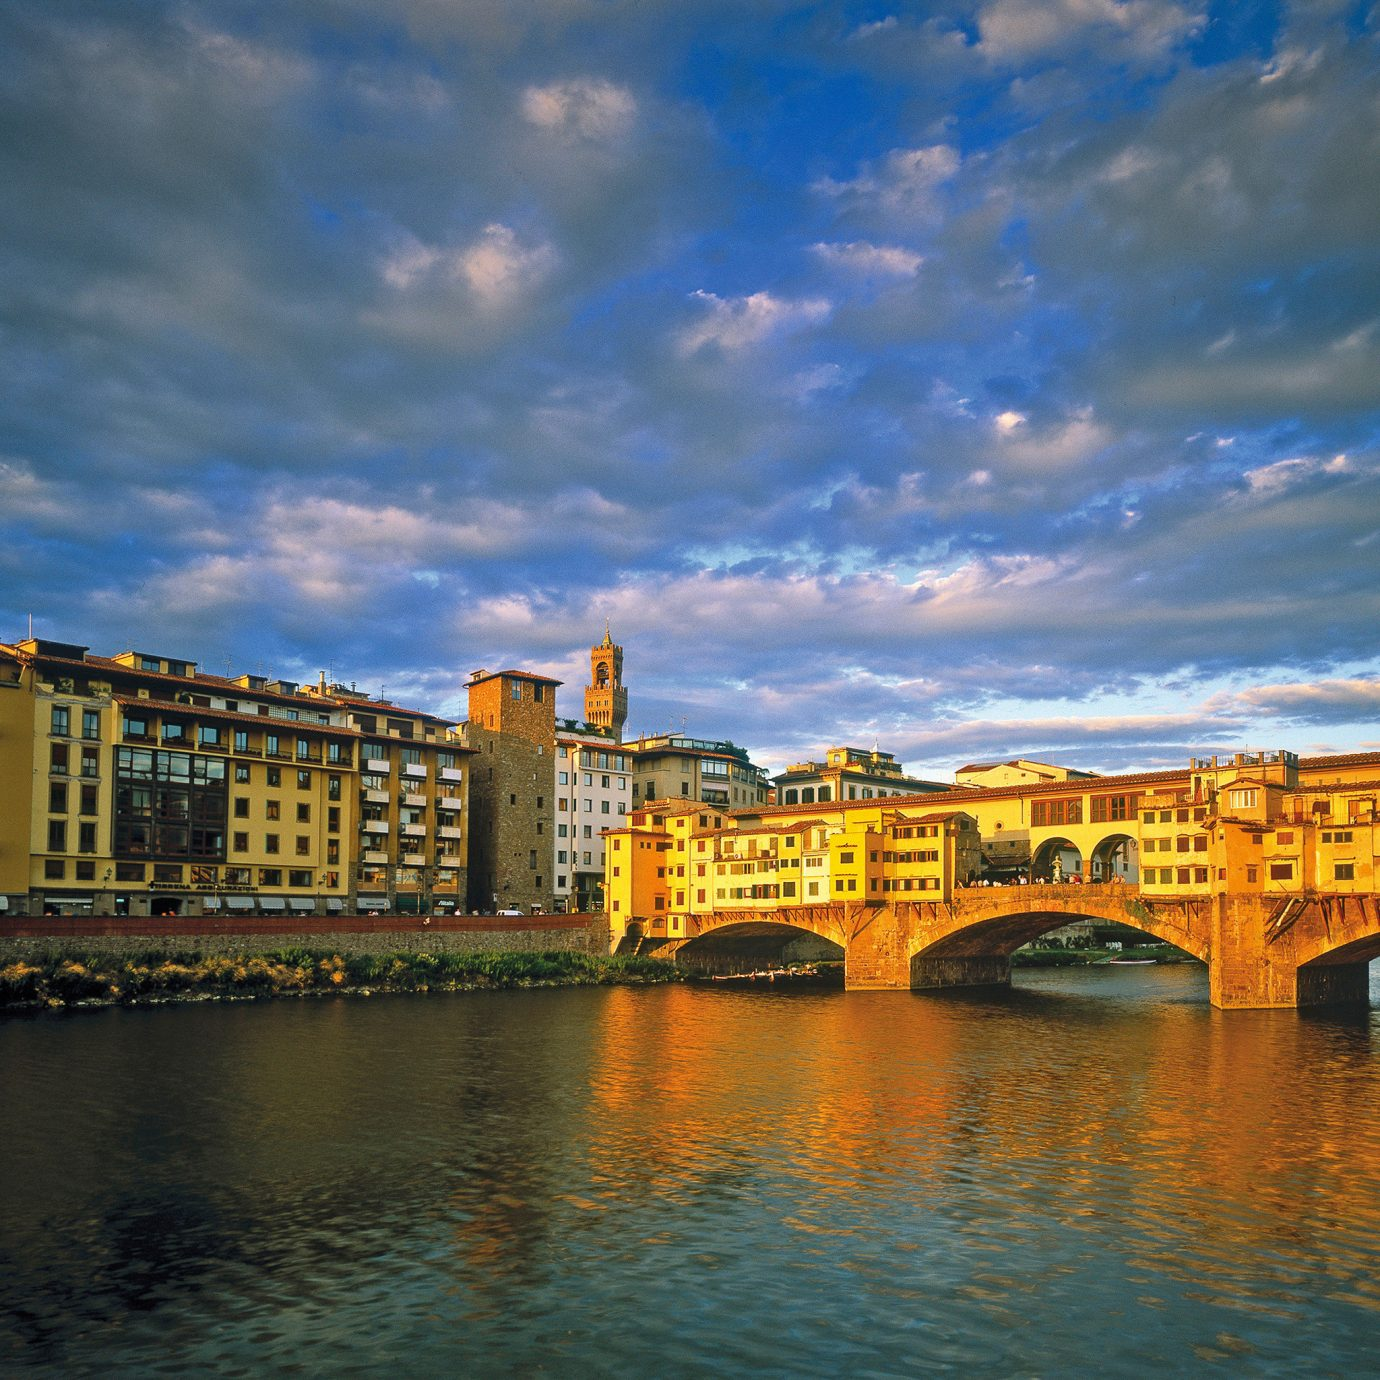 Architecture Buildings City Drink Eat Entertainment Landmarks Monuments Museums Nightlife River Scenic views Shop sky water yellow scene cityscape bridge evening dusk cloud morning Sunset Harbor channel waterway Sea skyline